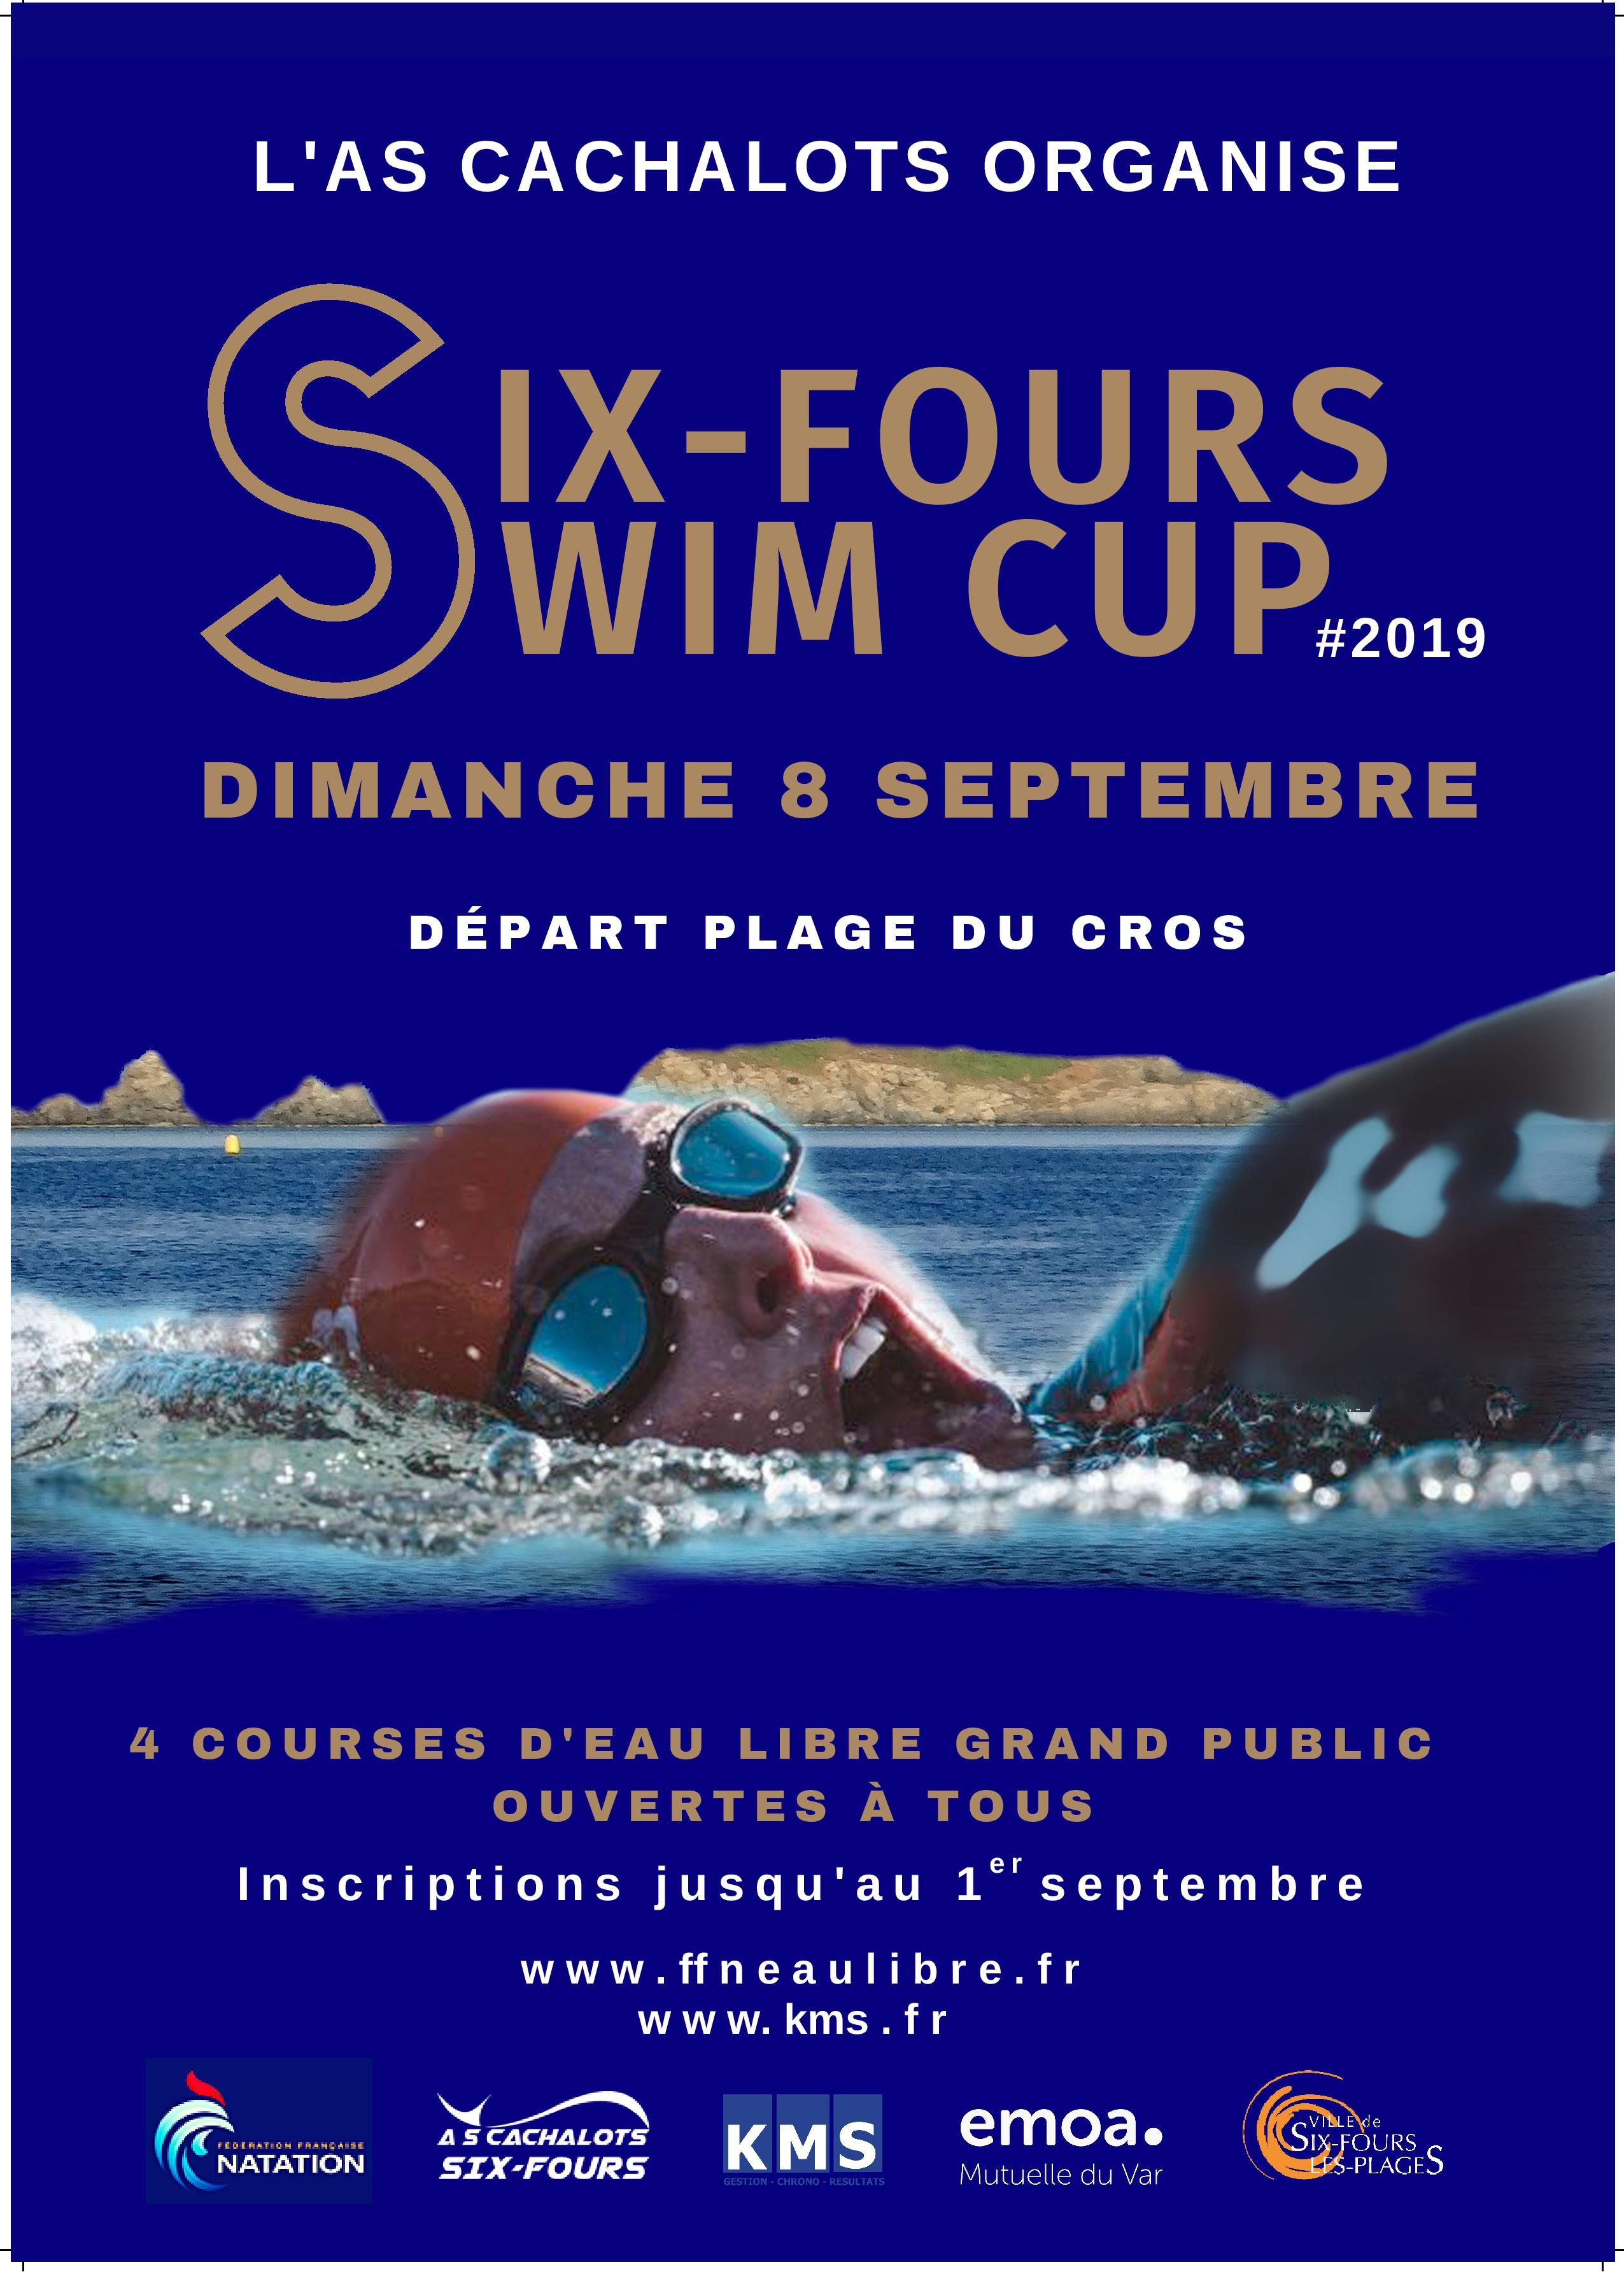 3KM - SIX FOURS SWIM CUP : Maillot FFN